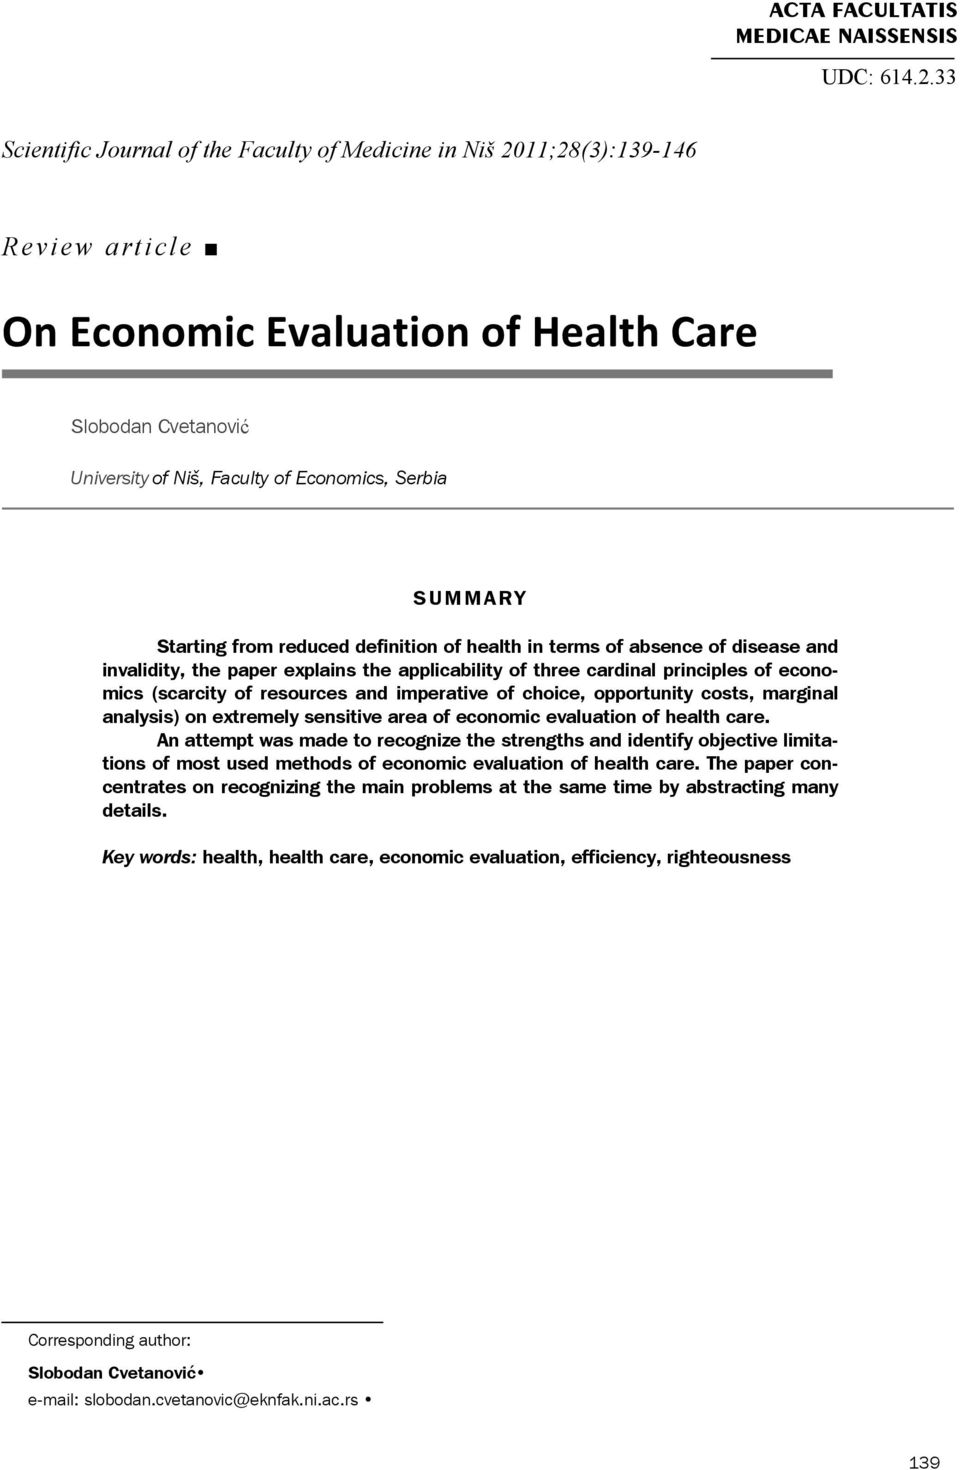 SUMMARY Starting from reduced definition of health in terms of absence of disease and invalidity, the paper explains the applicability of three cardinal principles of economics (scarcity of resources